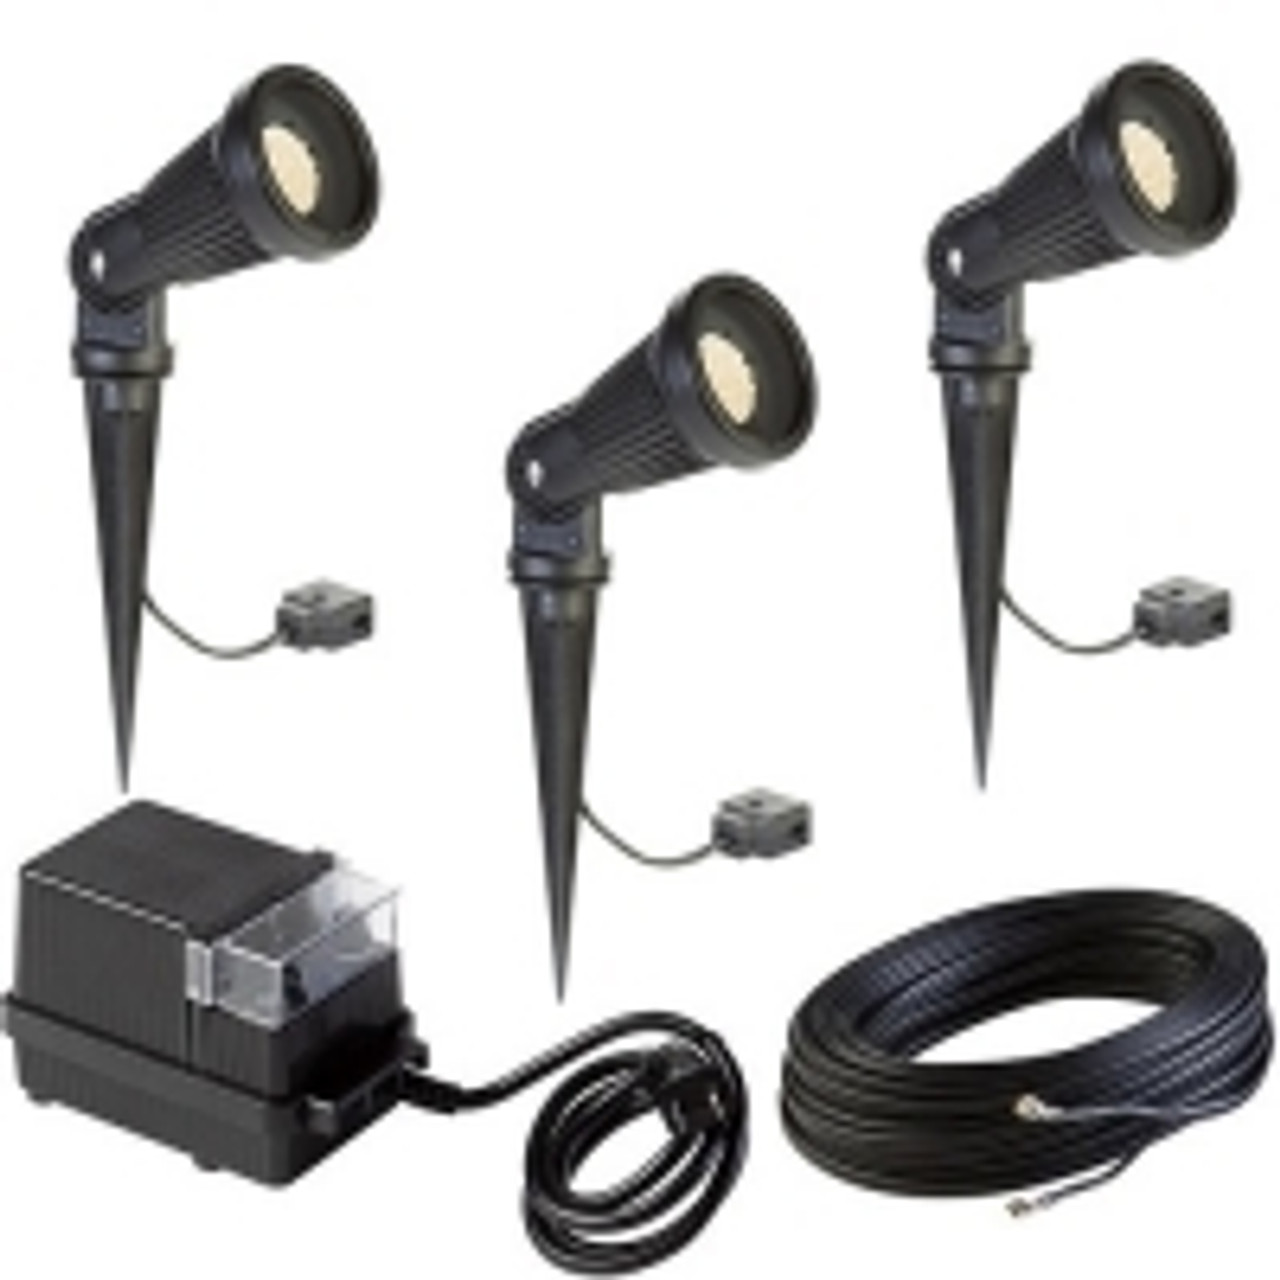 DIY Spot Lights Kits